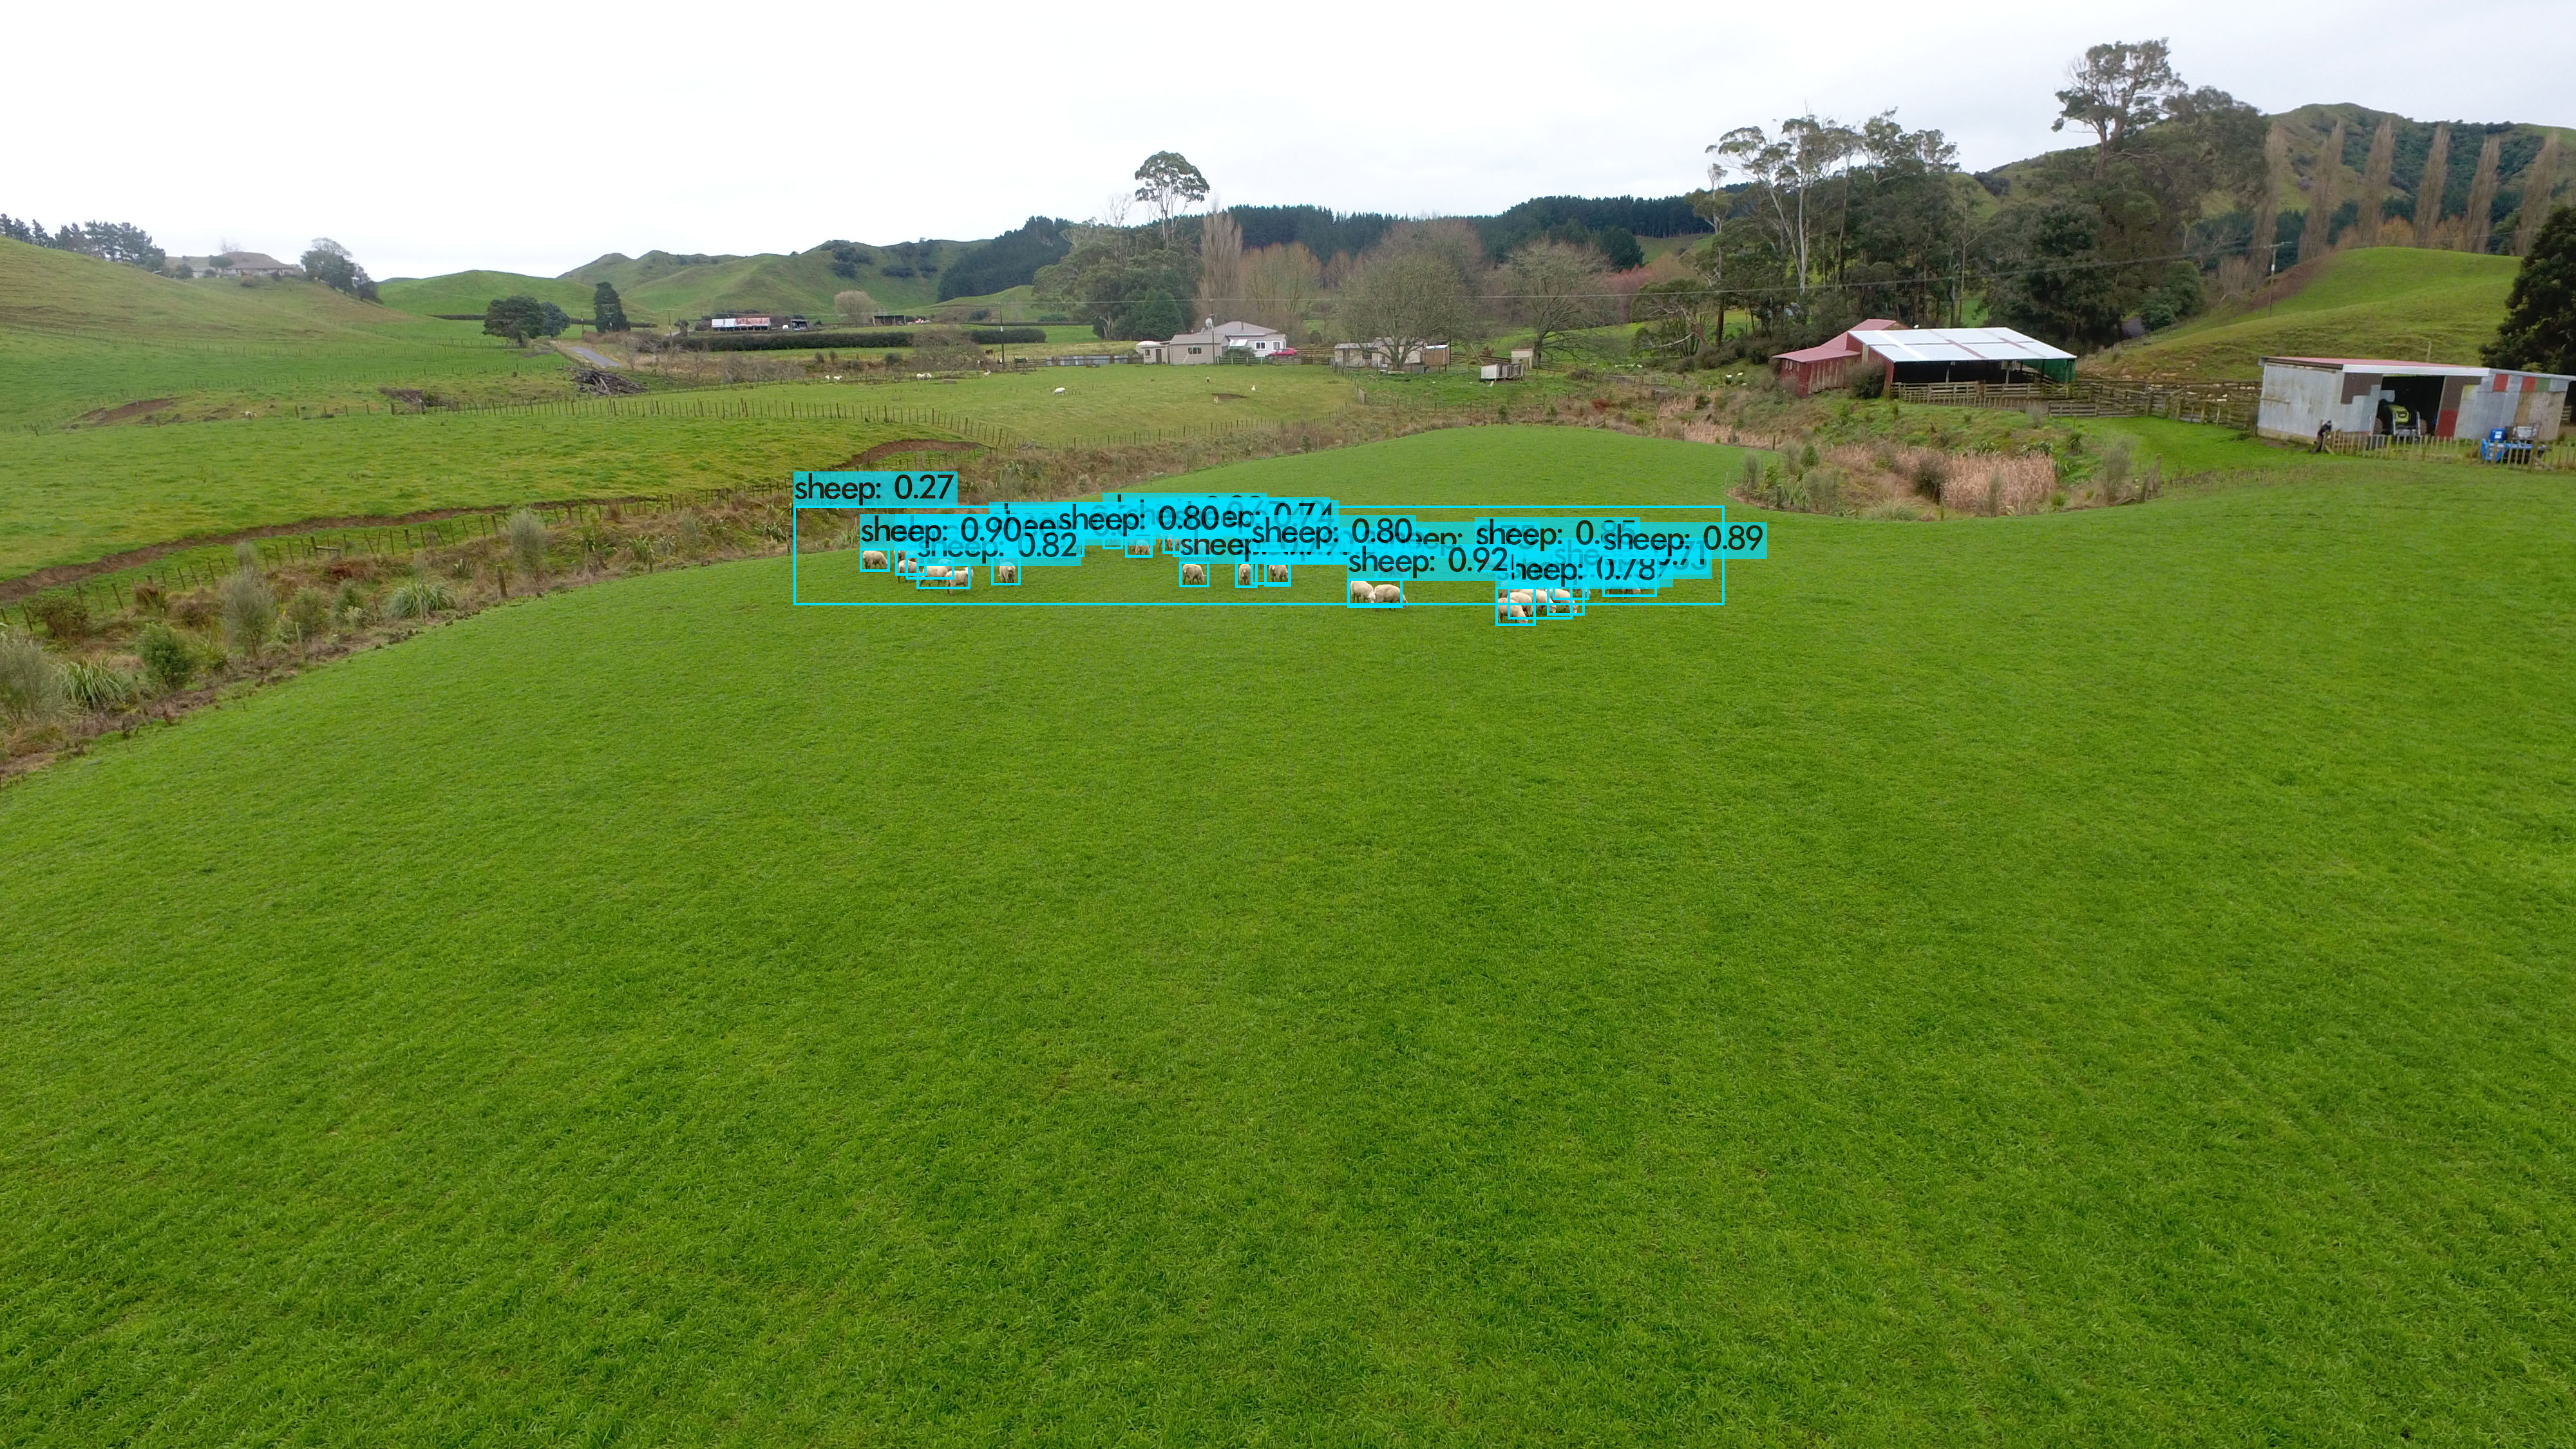 Drone Image for Sheep Count and Pasture